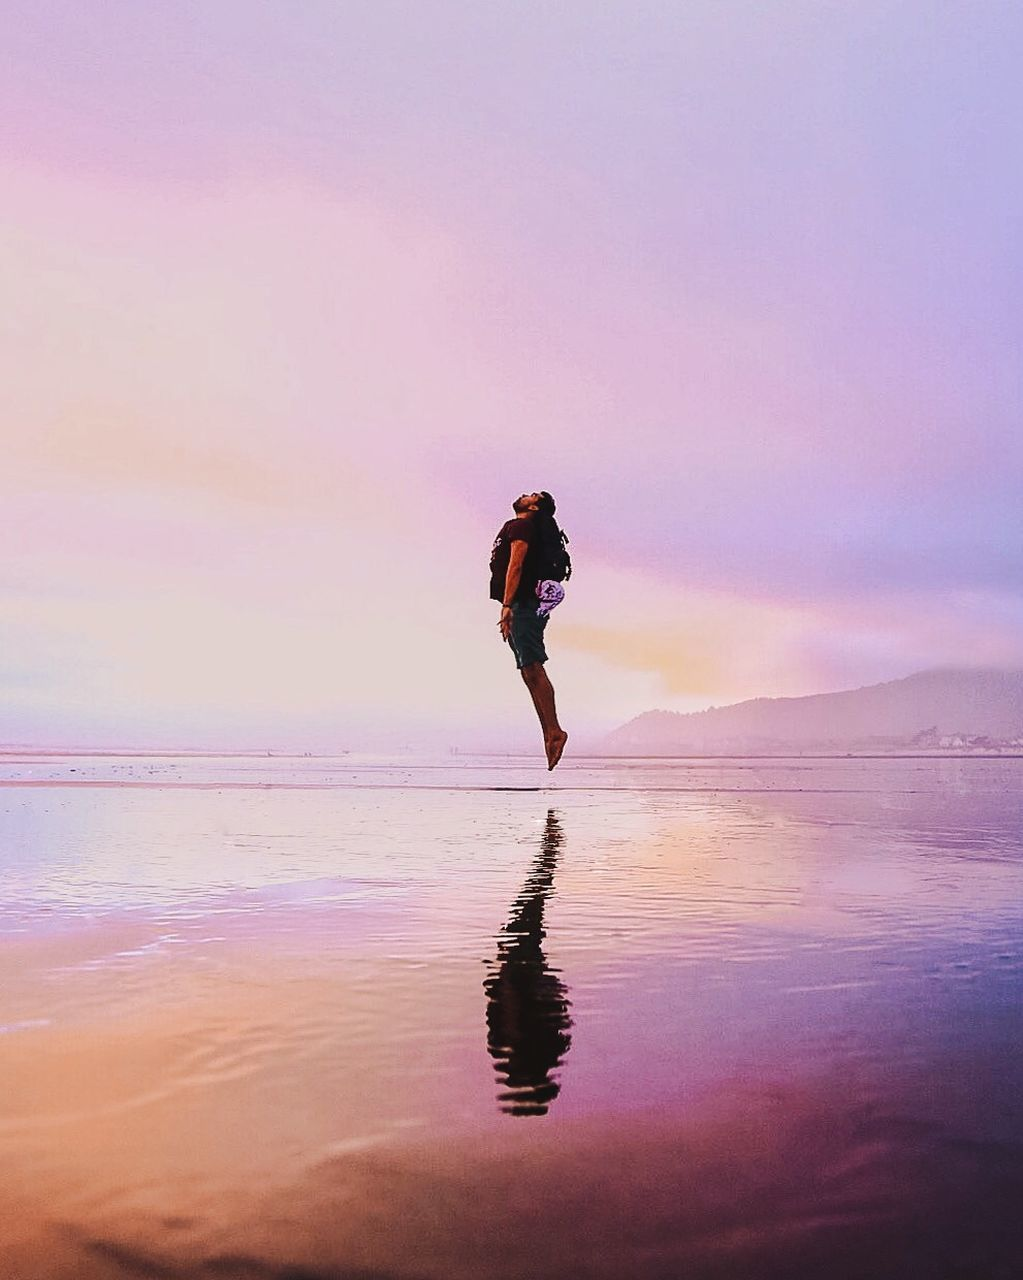 water, sunset, reflection, full length, one person, nature, sea, beauty in nature, sky, real people, tranquility, leisure activity, outdoors, beach, lifestyles, scenics, standing, women, day, young adult, people